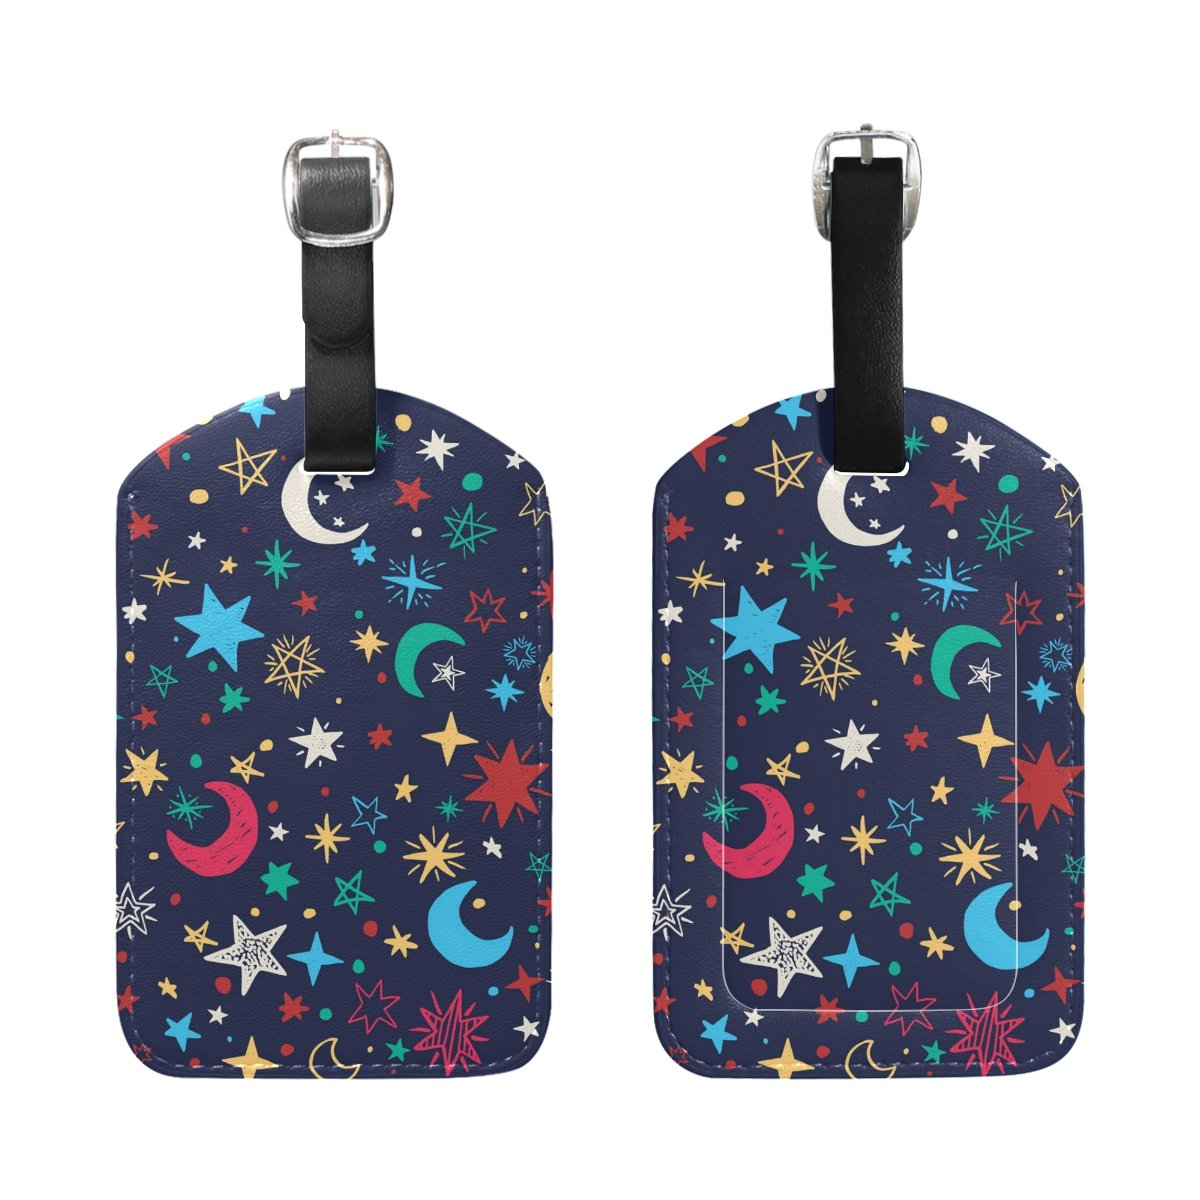 Saobao Travel Luggage Tag Moons And Stars PU Leather Baggage Travel ID